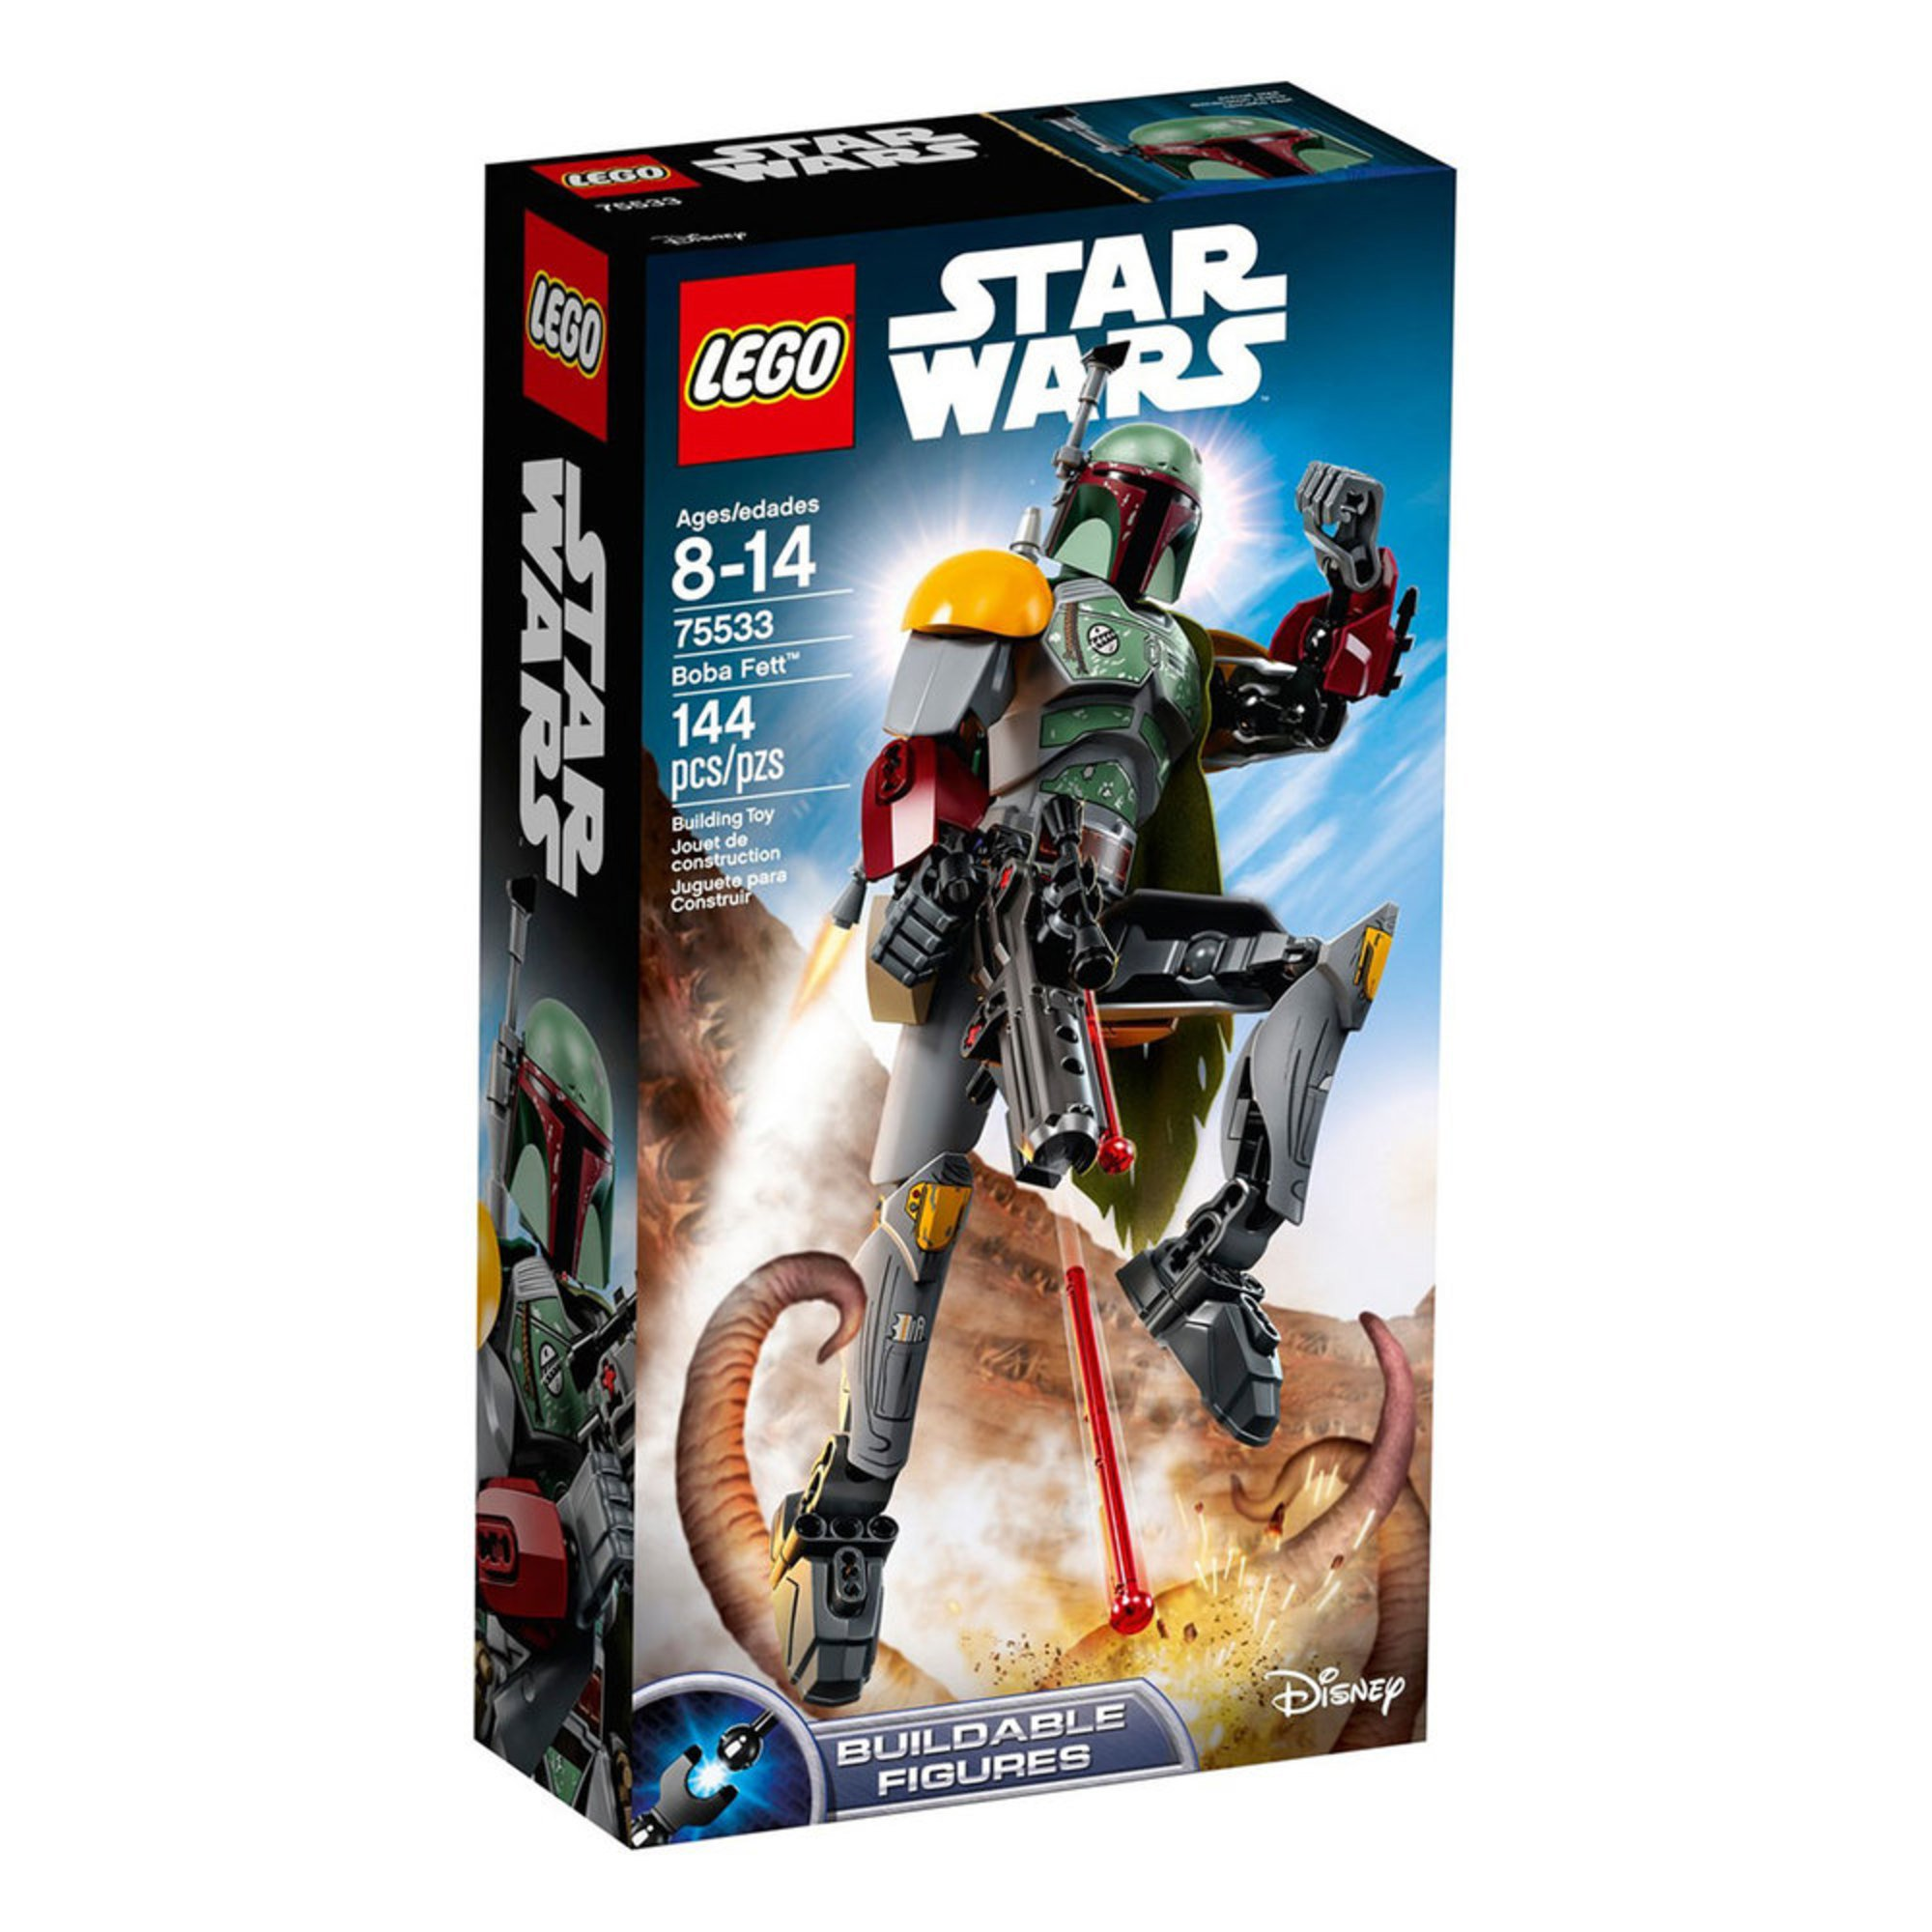 Lego Star Wars Boba Fett 75533 Building Sets Kits Baby Kids